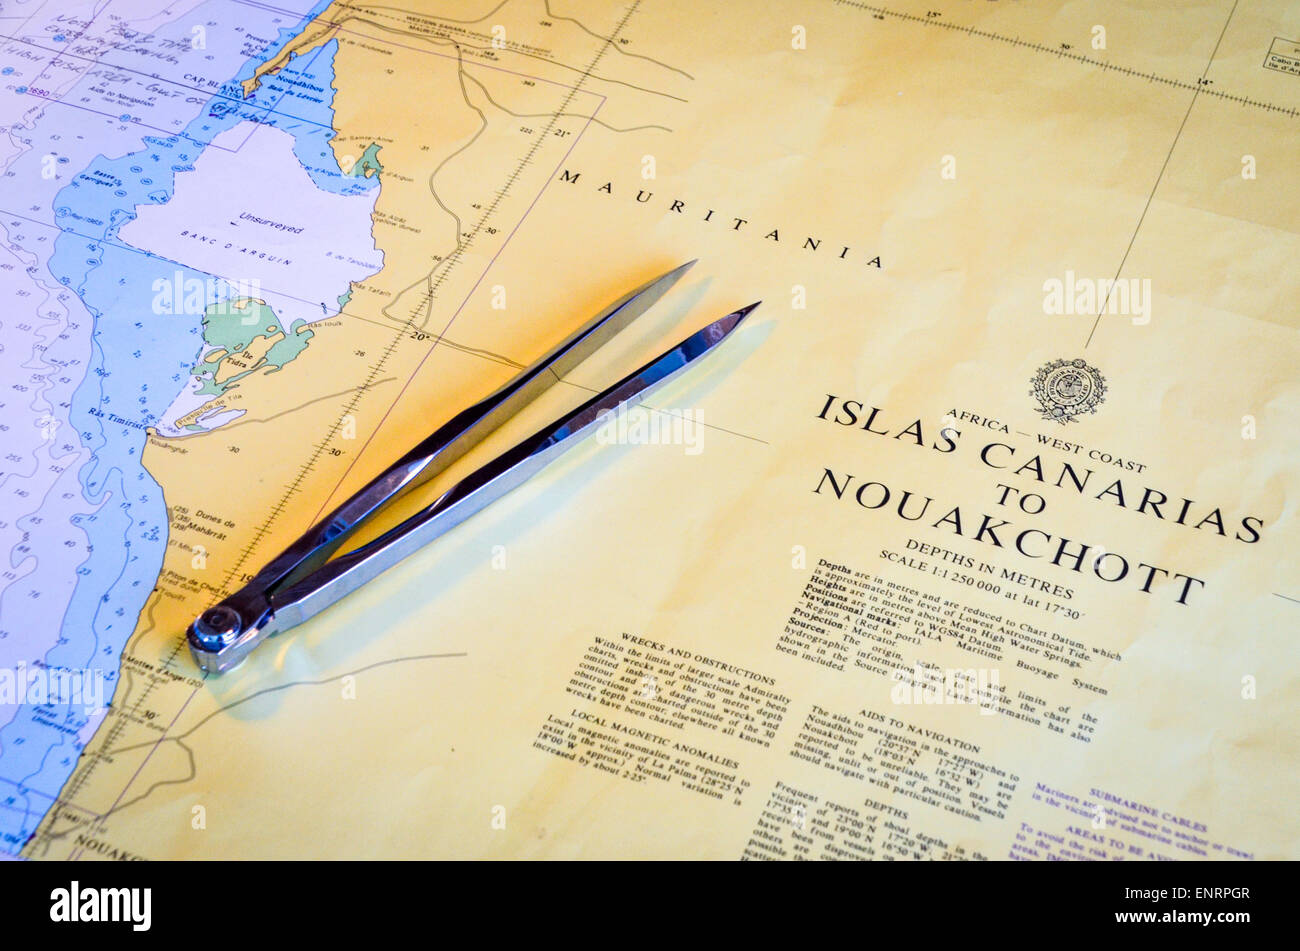 Compass and nautical chart of Mauritania, Africa - Stock Image